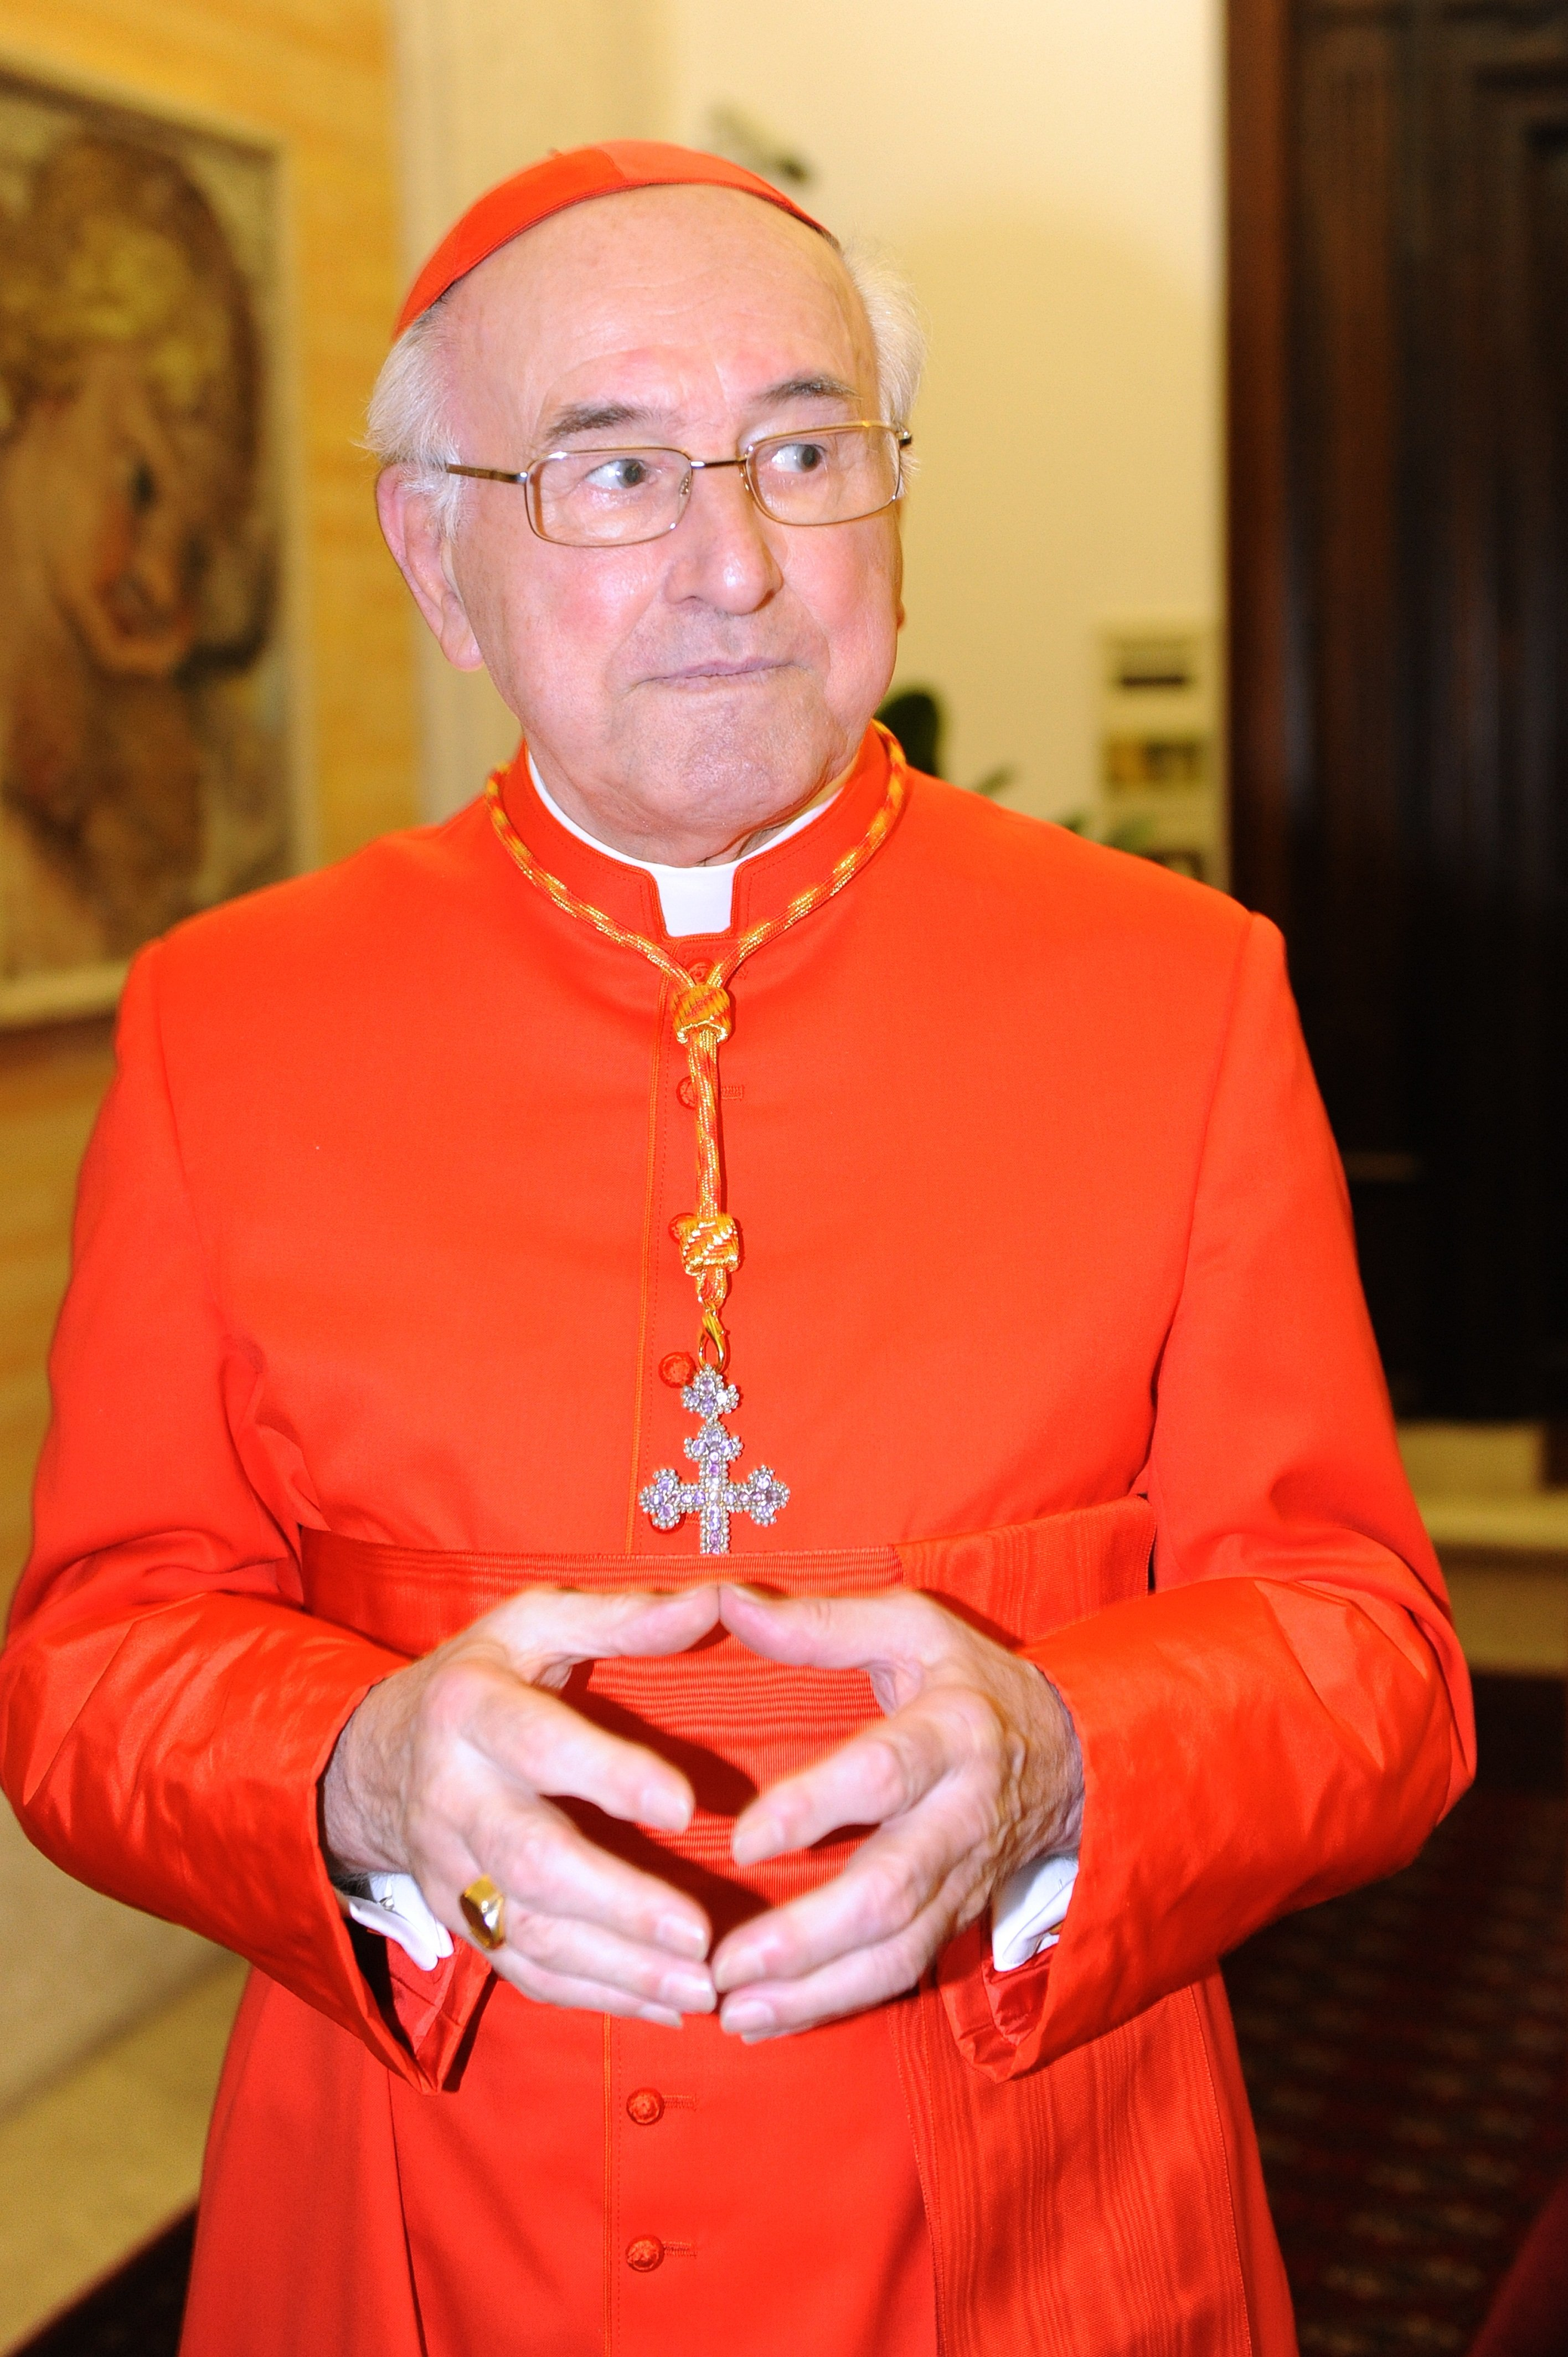 Newly appointed cardinal from germany Walter Brandmueller (C) greets visitors during the traditionnal courtesy visit after the consistory on November 20, 2010 at The Vatican. (GIUSEPPE CACACE/AFP/Getty Images)